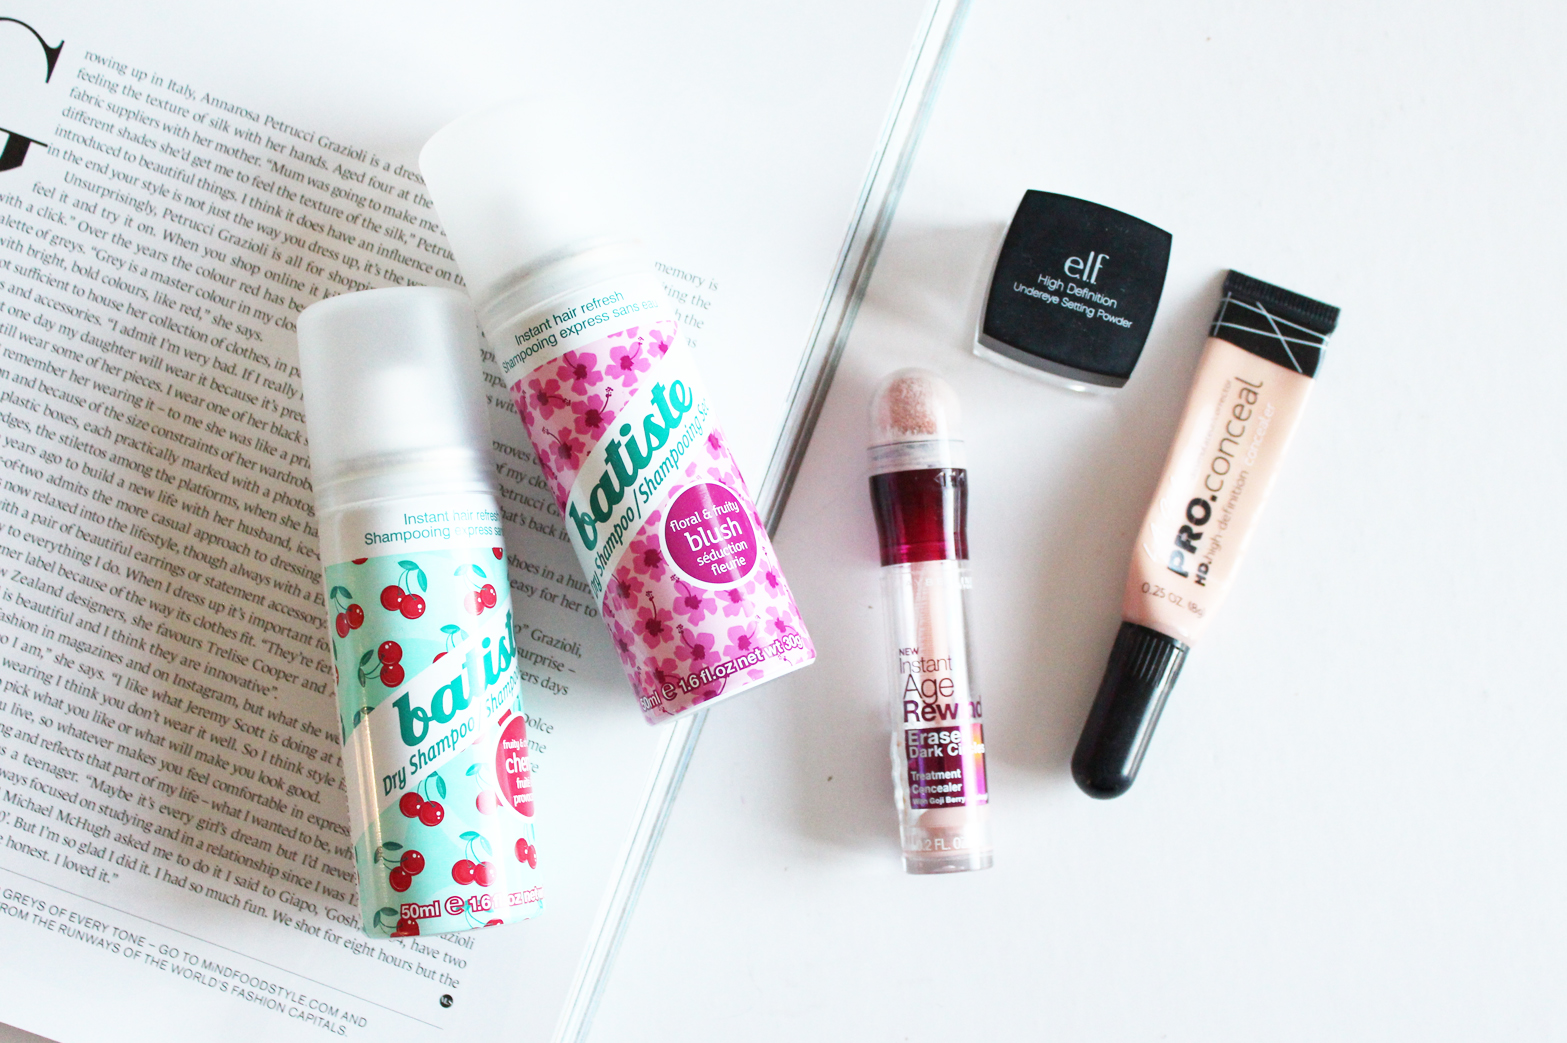 EMPTIES | June '15 - Batiste, LA Girl, Maybelline, Rimmel, elf - Reviews - CassandraMyee